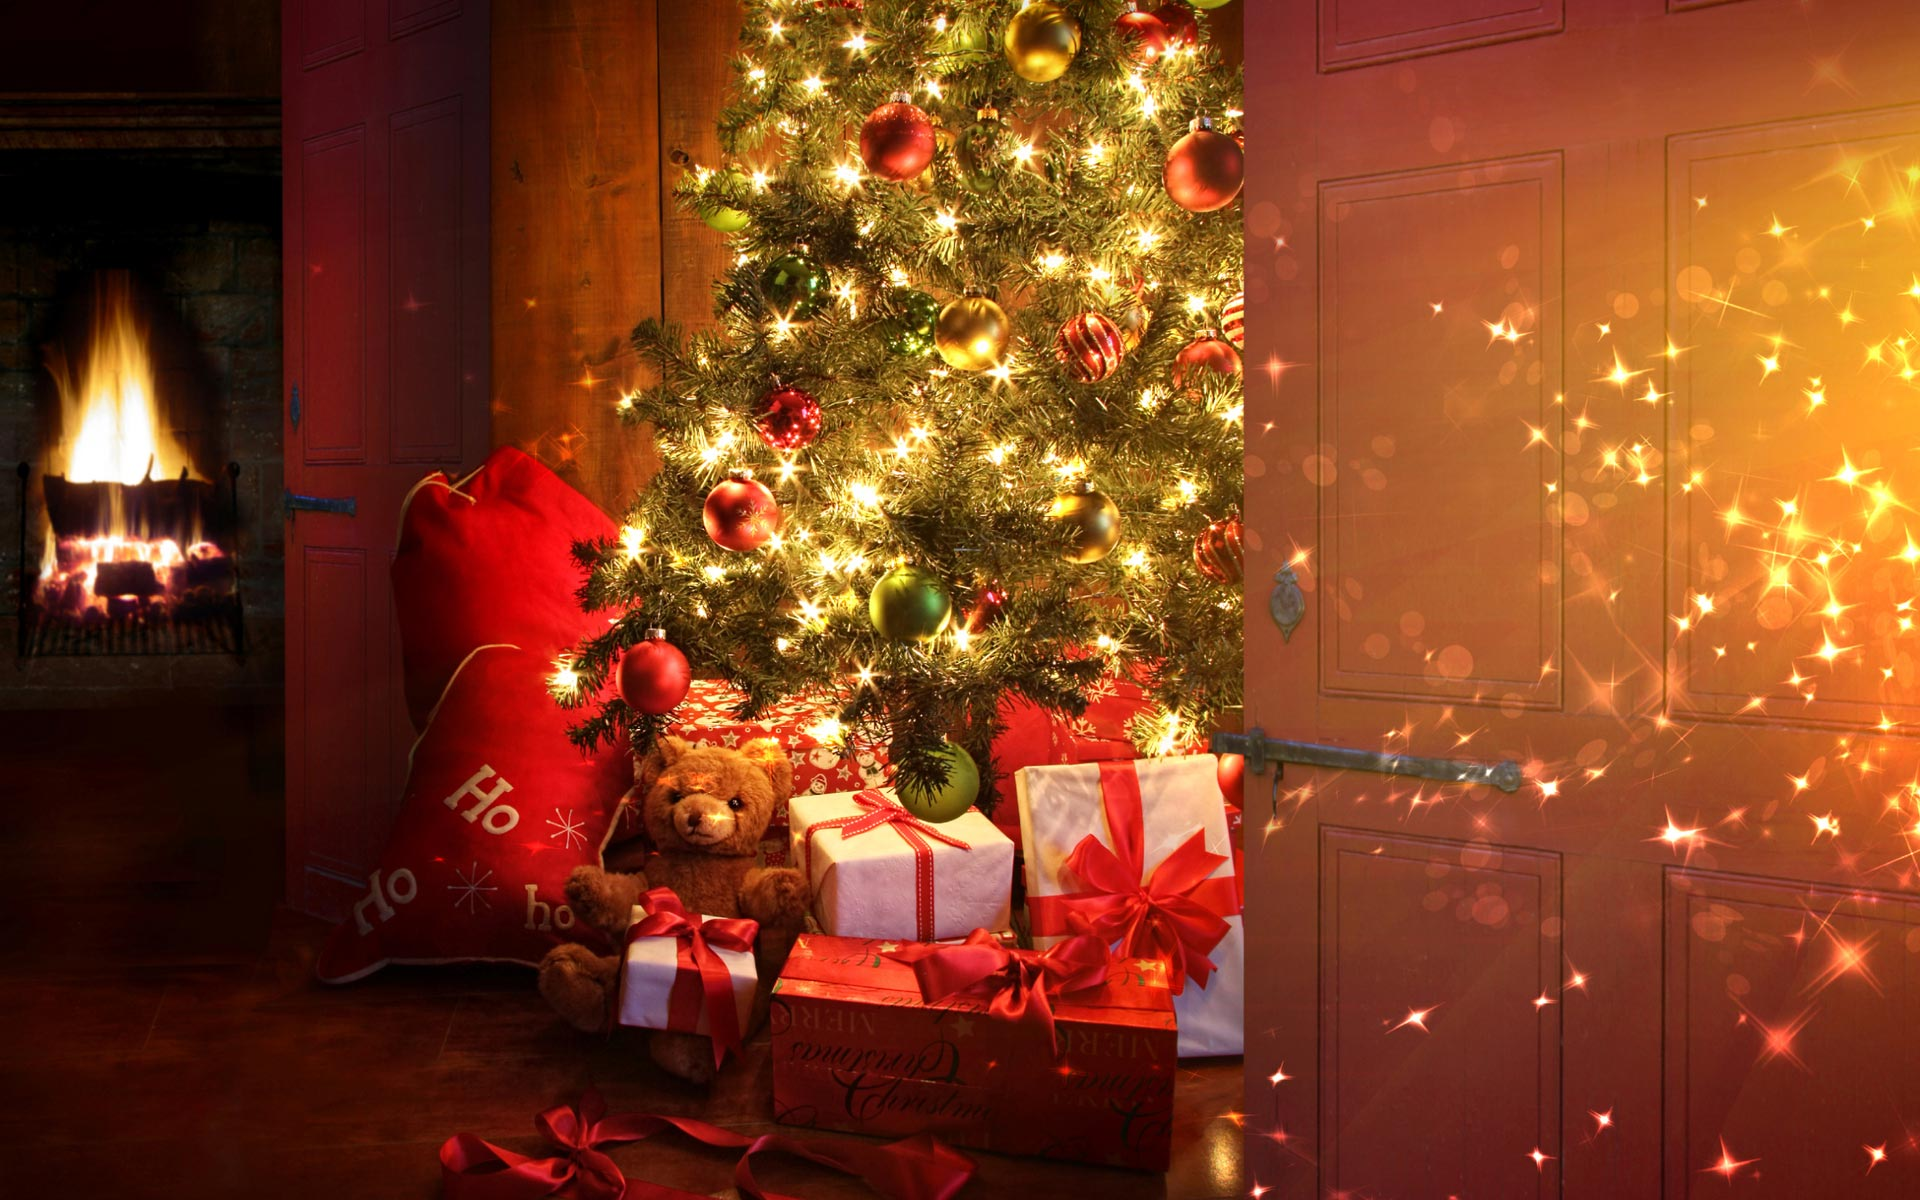 Christmas-Magic-Light-Gifts-HD-Wallpapers